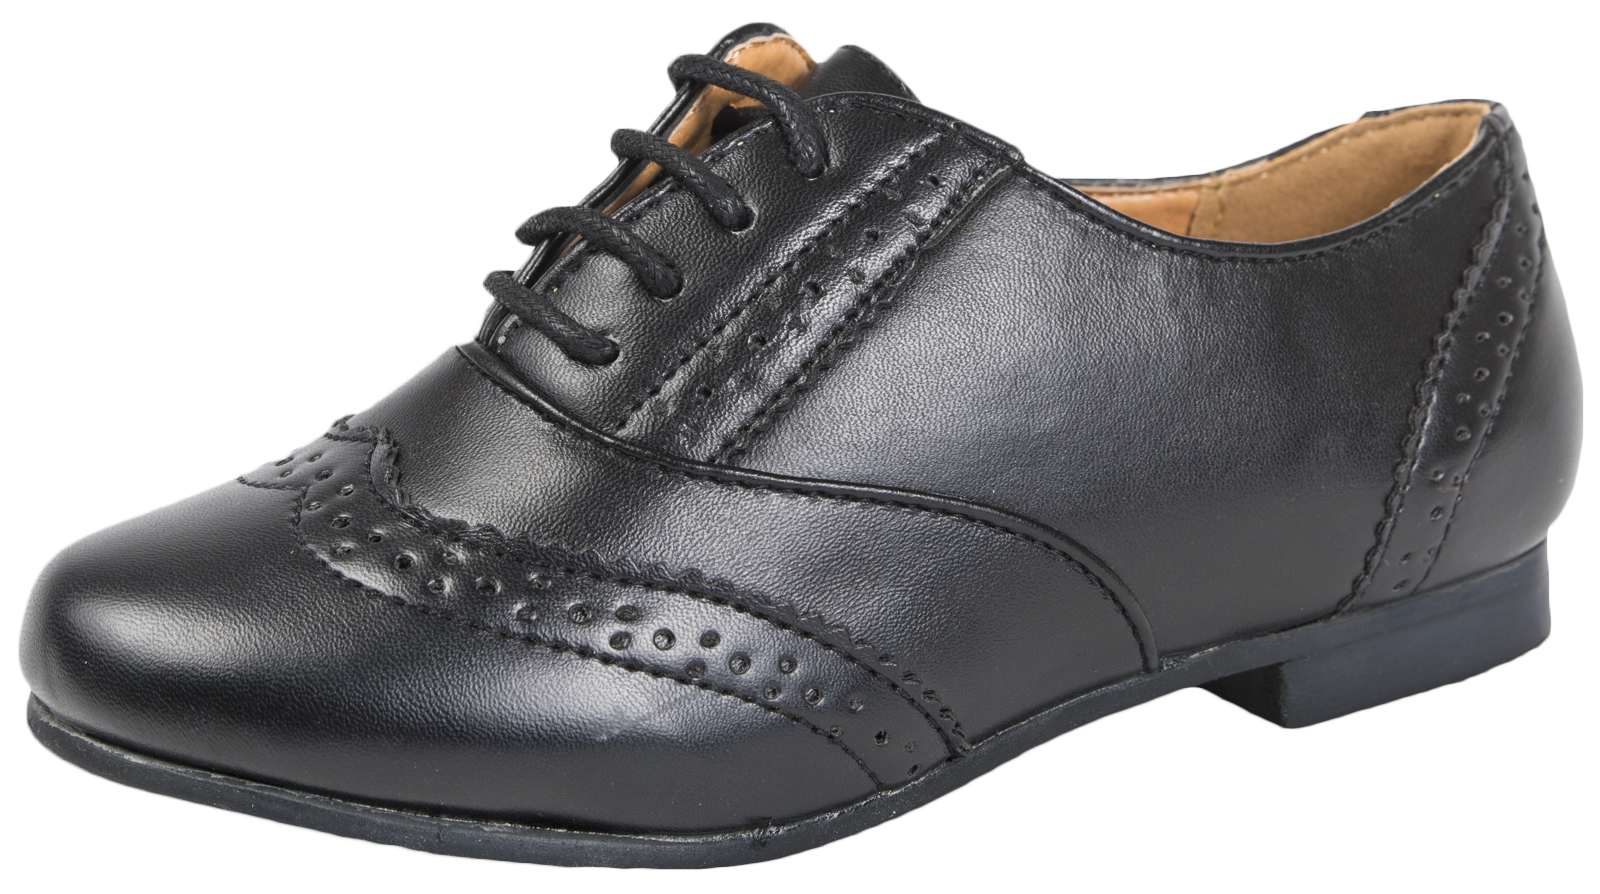 91abf169d Girls Lace Up Brogues Black School Shoes Patent Womens Formal Work ...